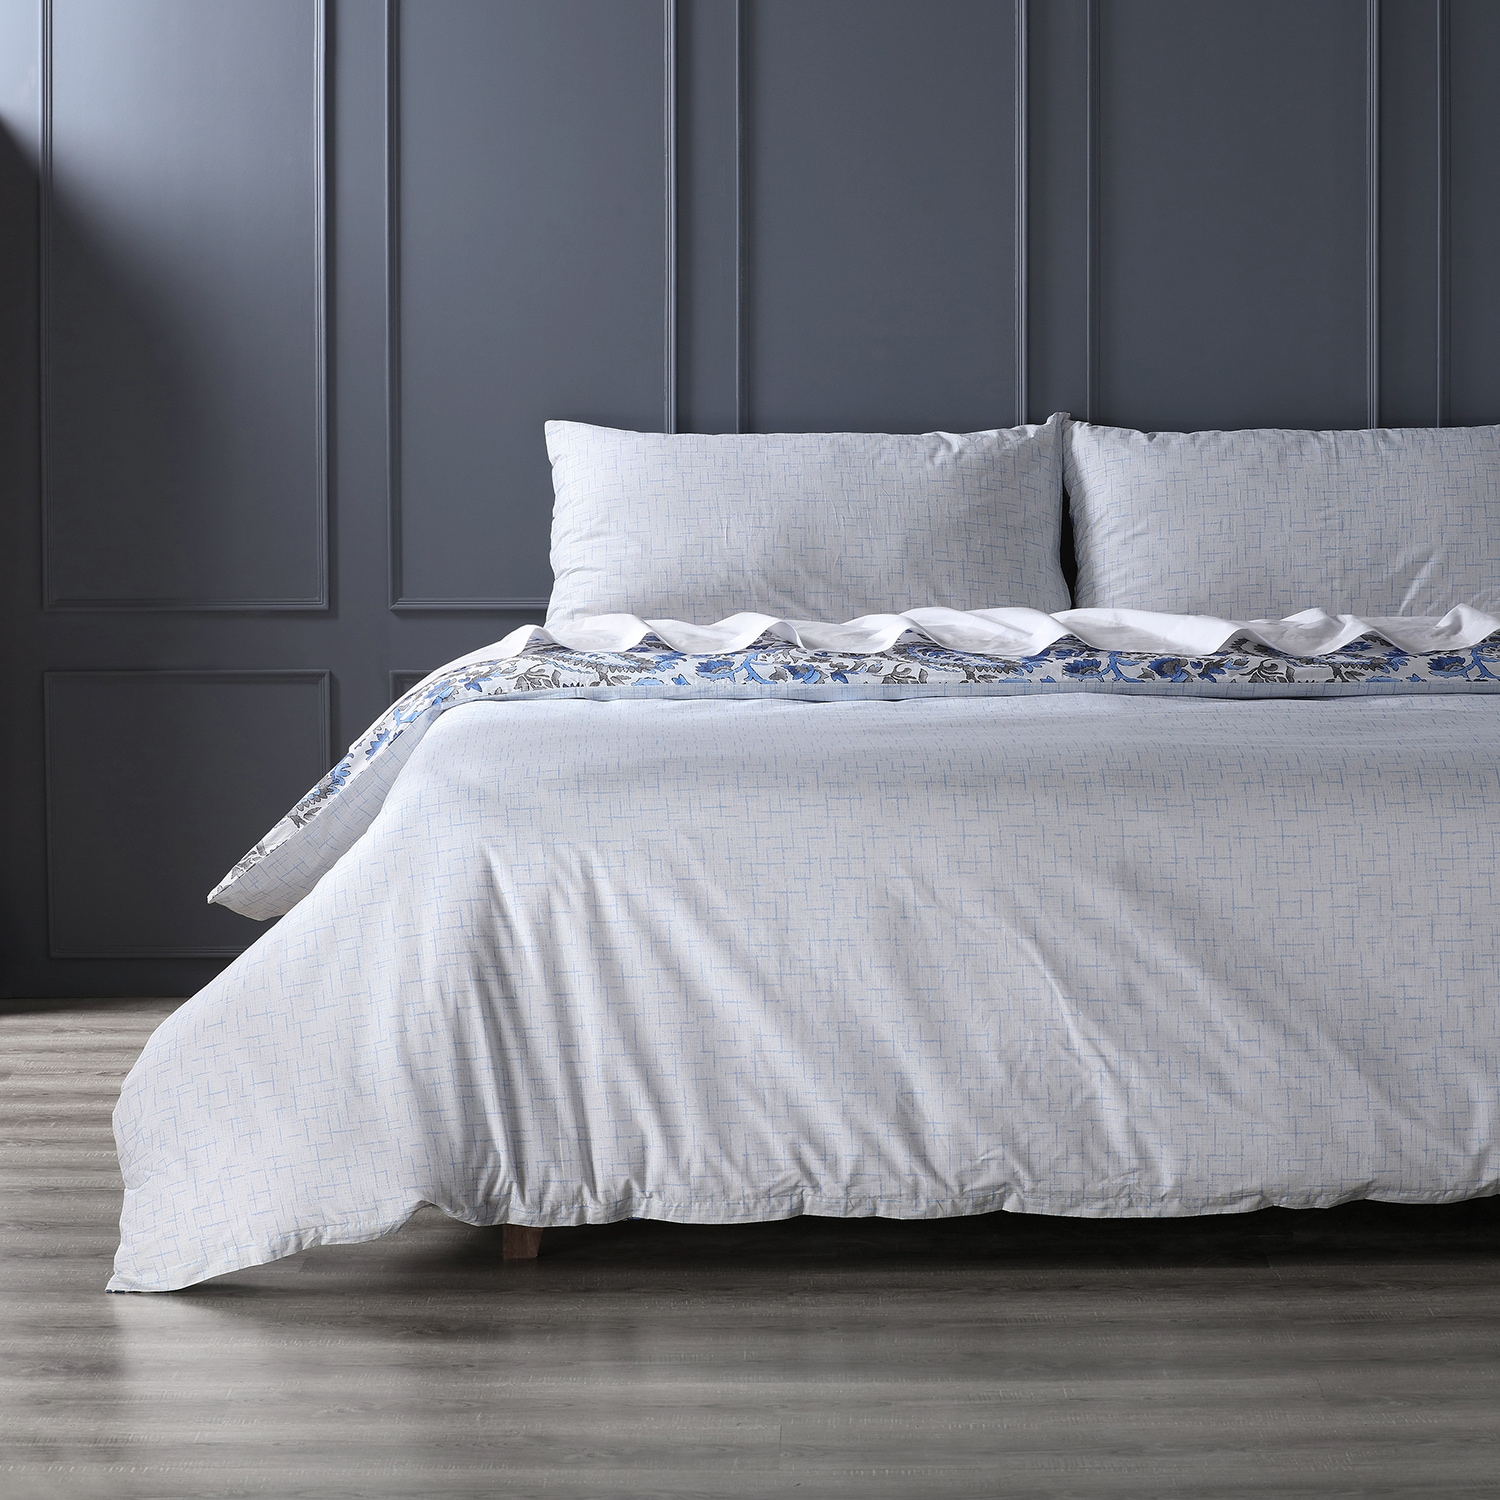 Cheshire Blue Cotton Percale Printed Reversible Duvet Cover Set